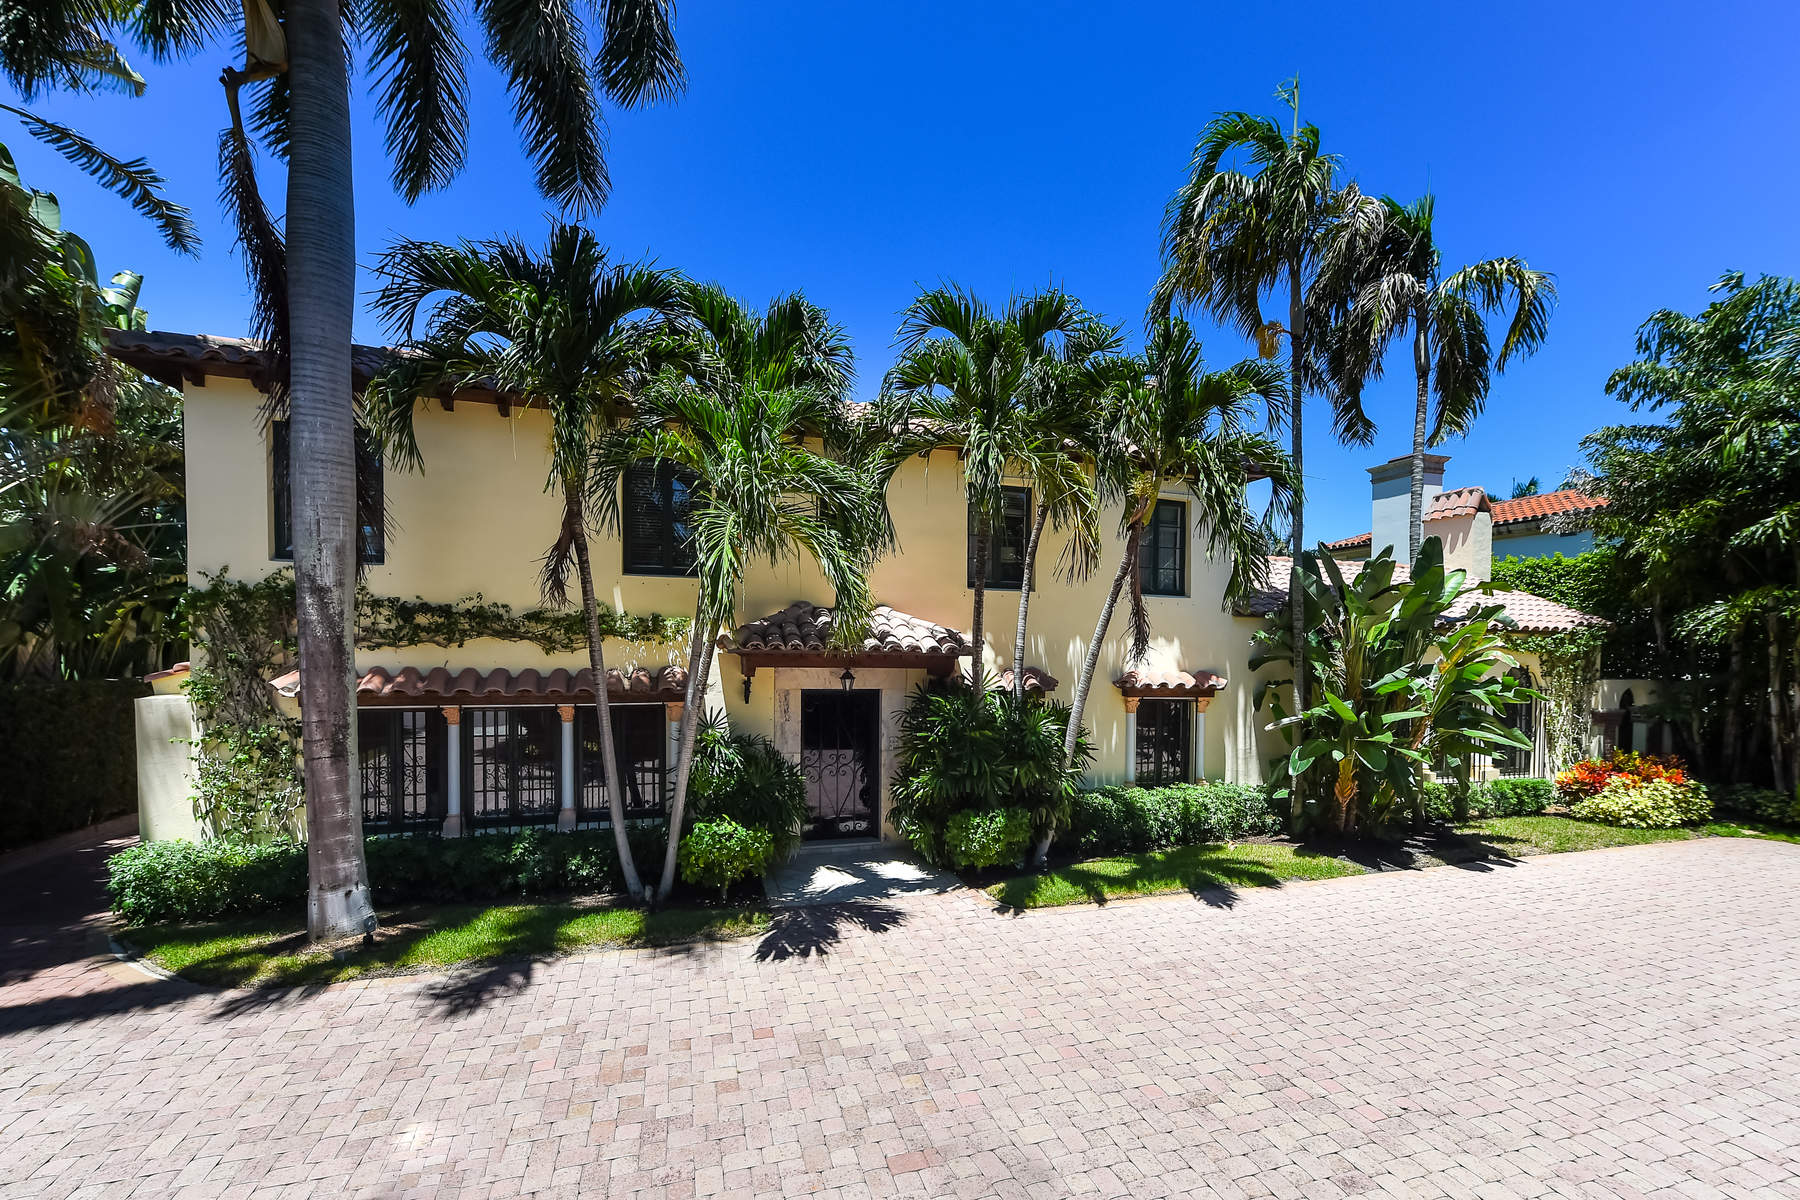 Single Family Home for Sale at Magnificent Mediterranean House 235 Dunbar Rd Palm Beach, Florida 33480 United States